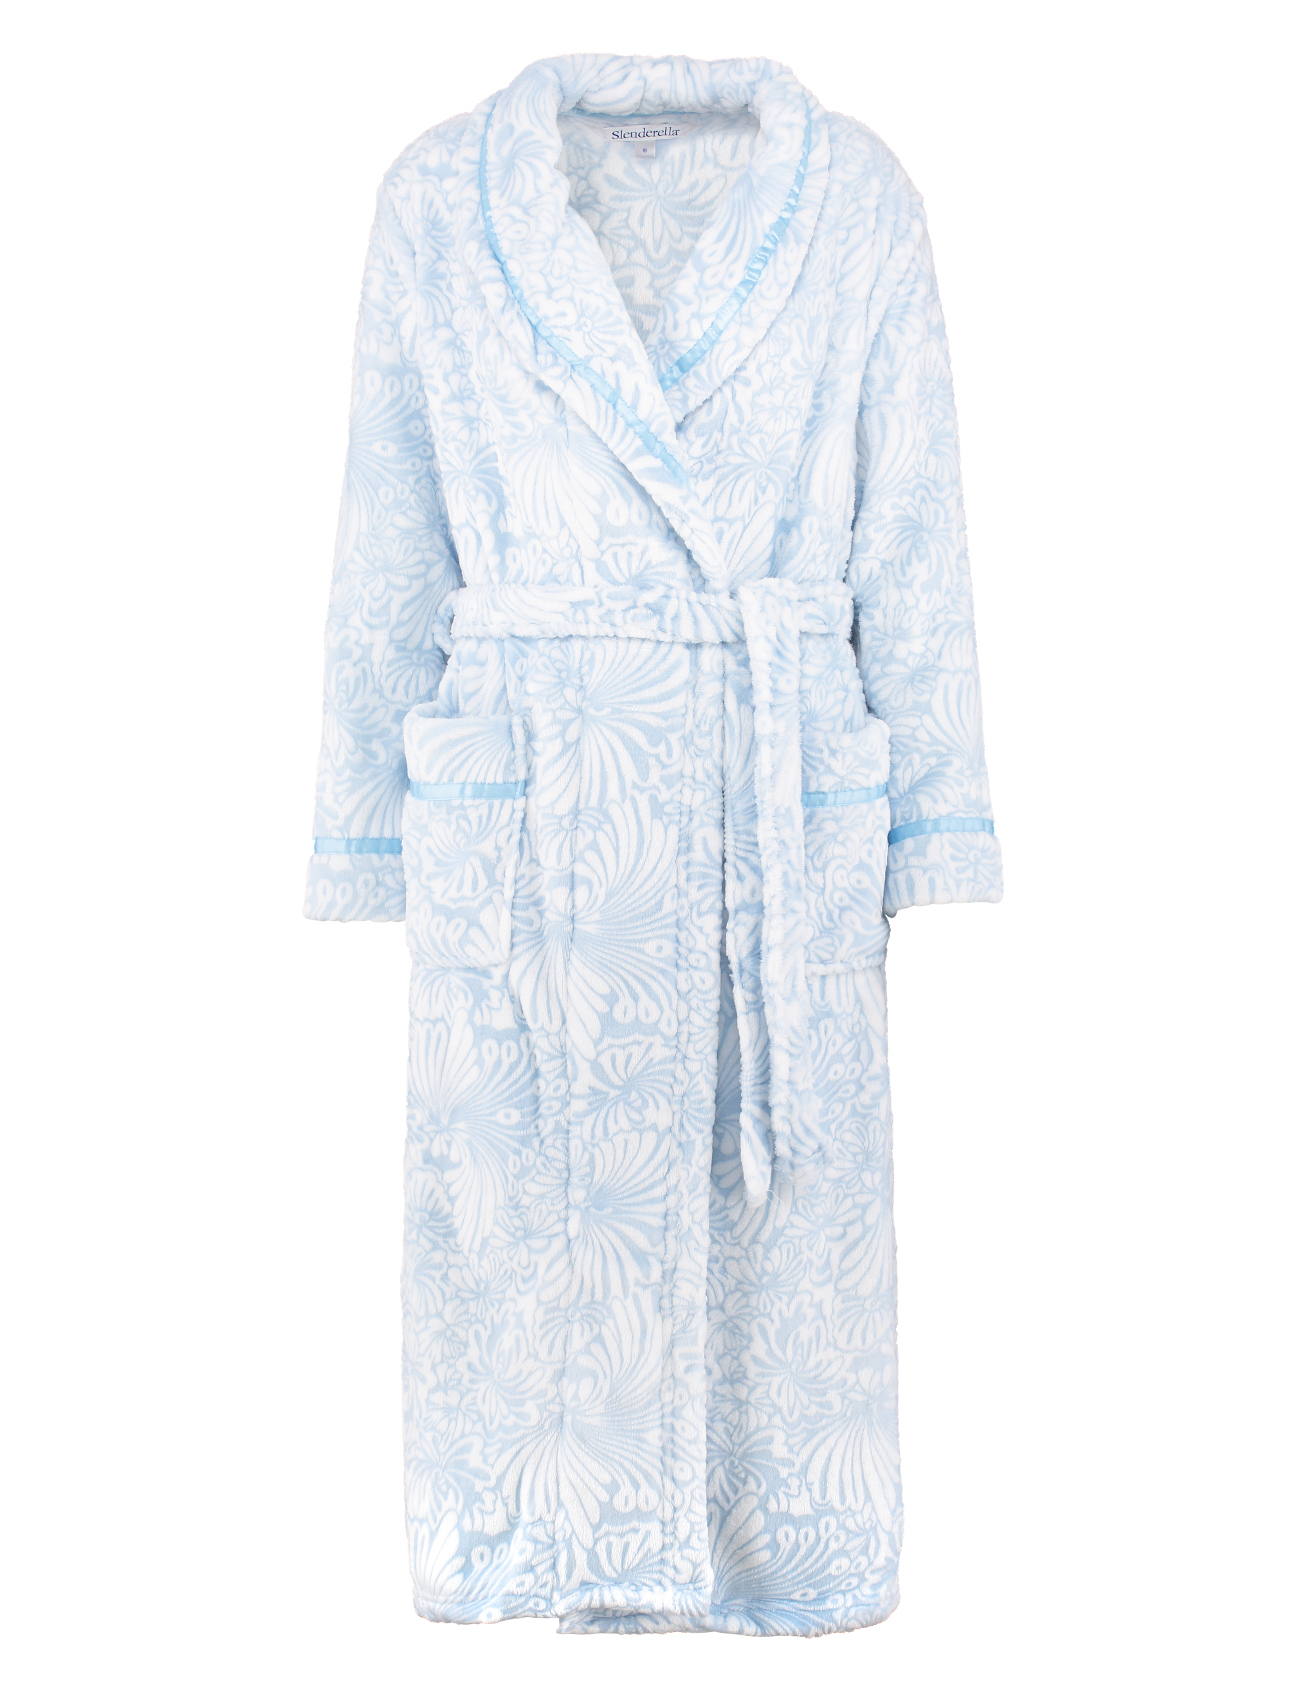 Bathrobe Slenderella Womens Wrap Super Soft Fleecy Floral Jacquard ...